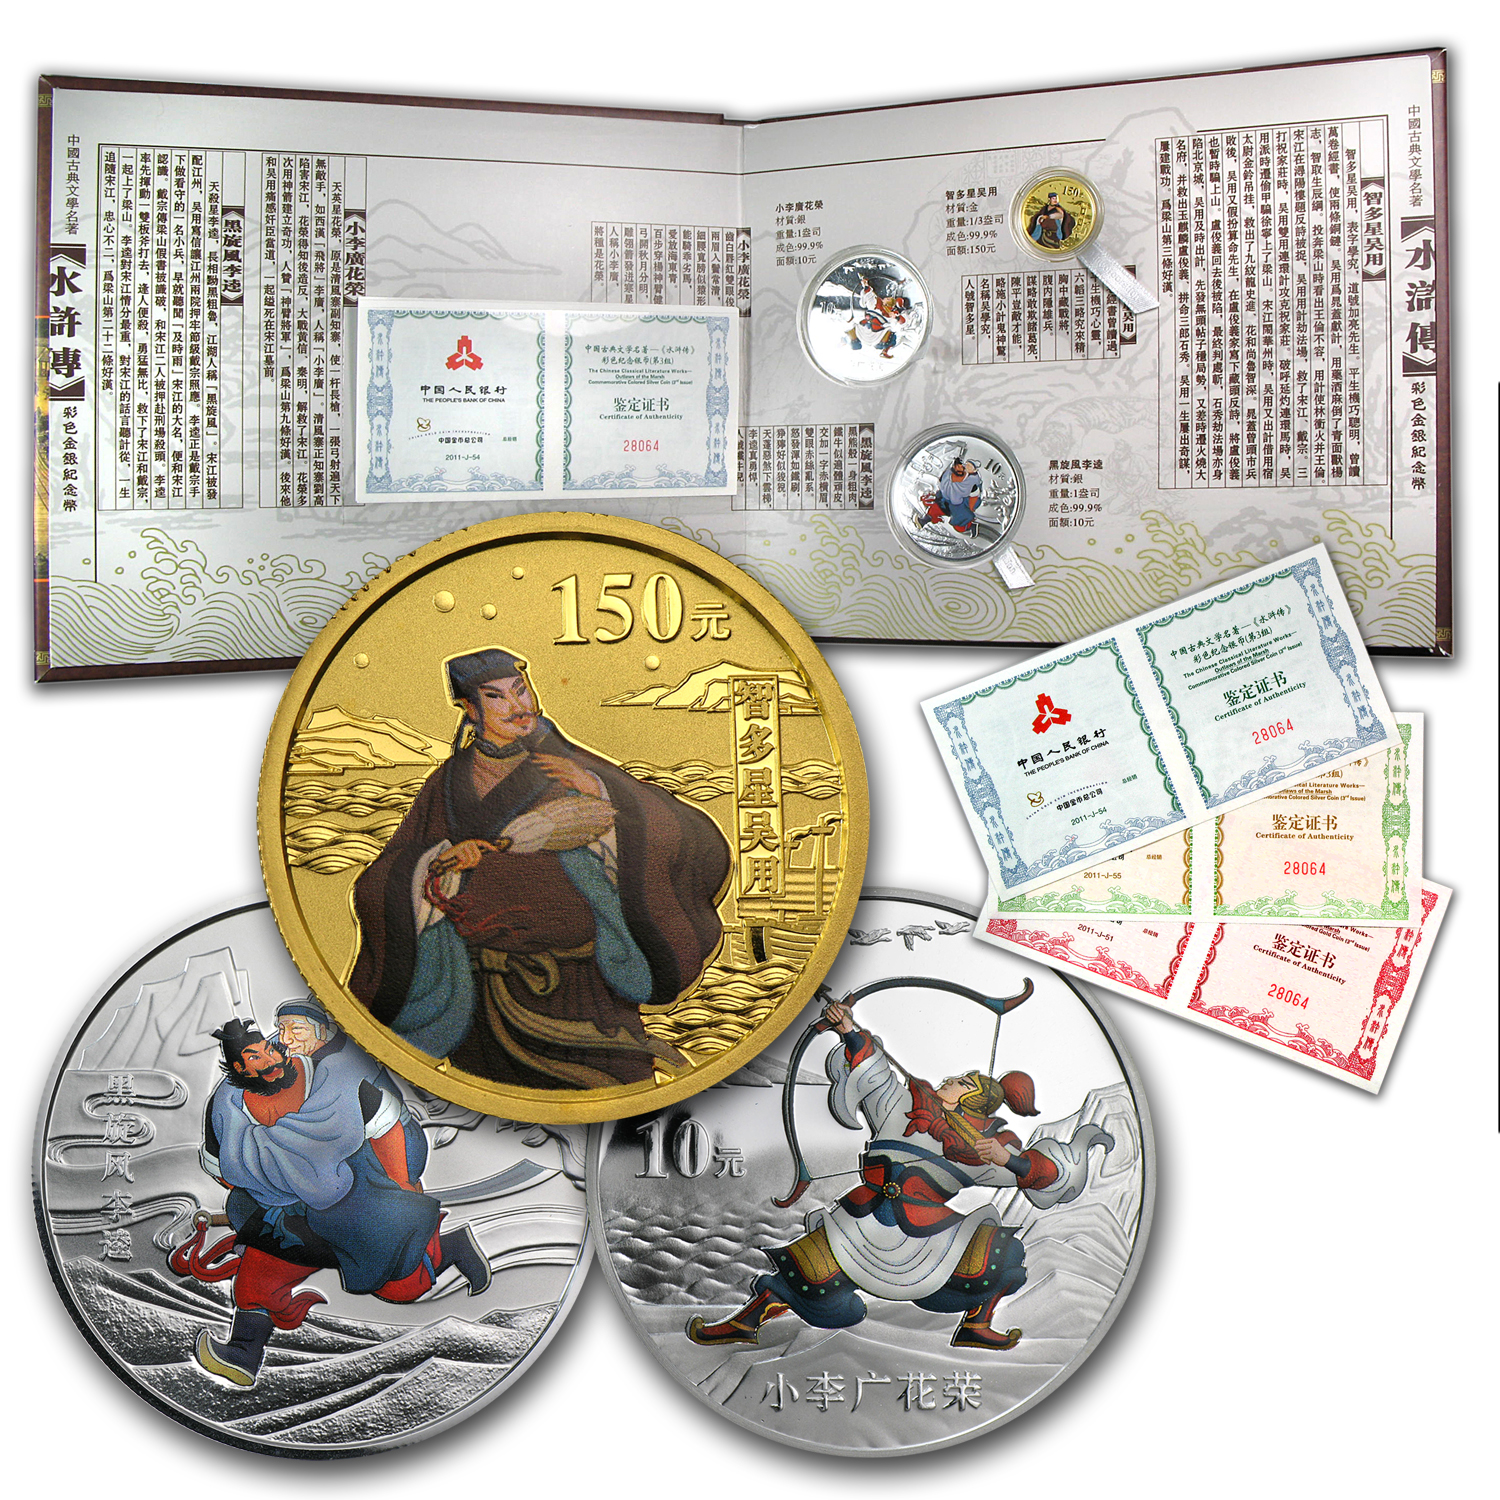 2011 China 3-Pc 1/3 oz Gold & 1 oz Silver Outlaws of Marsh Set